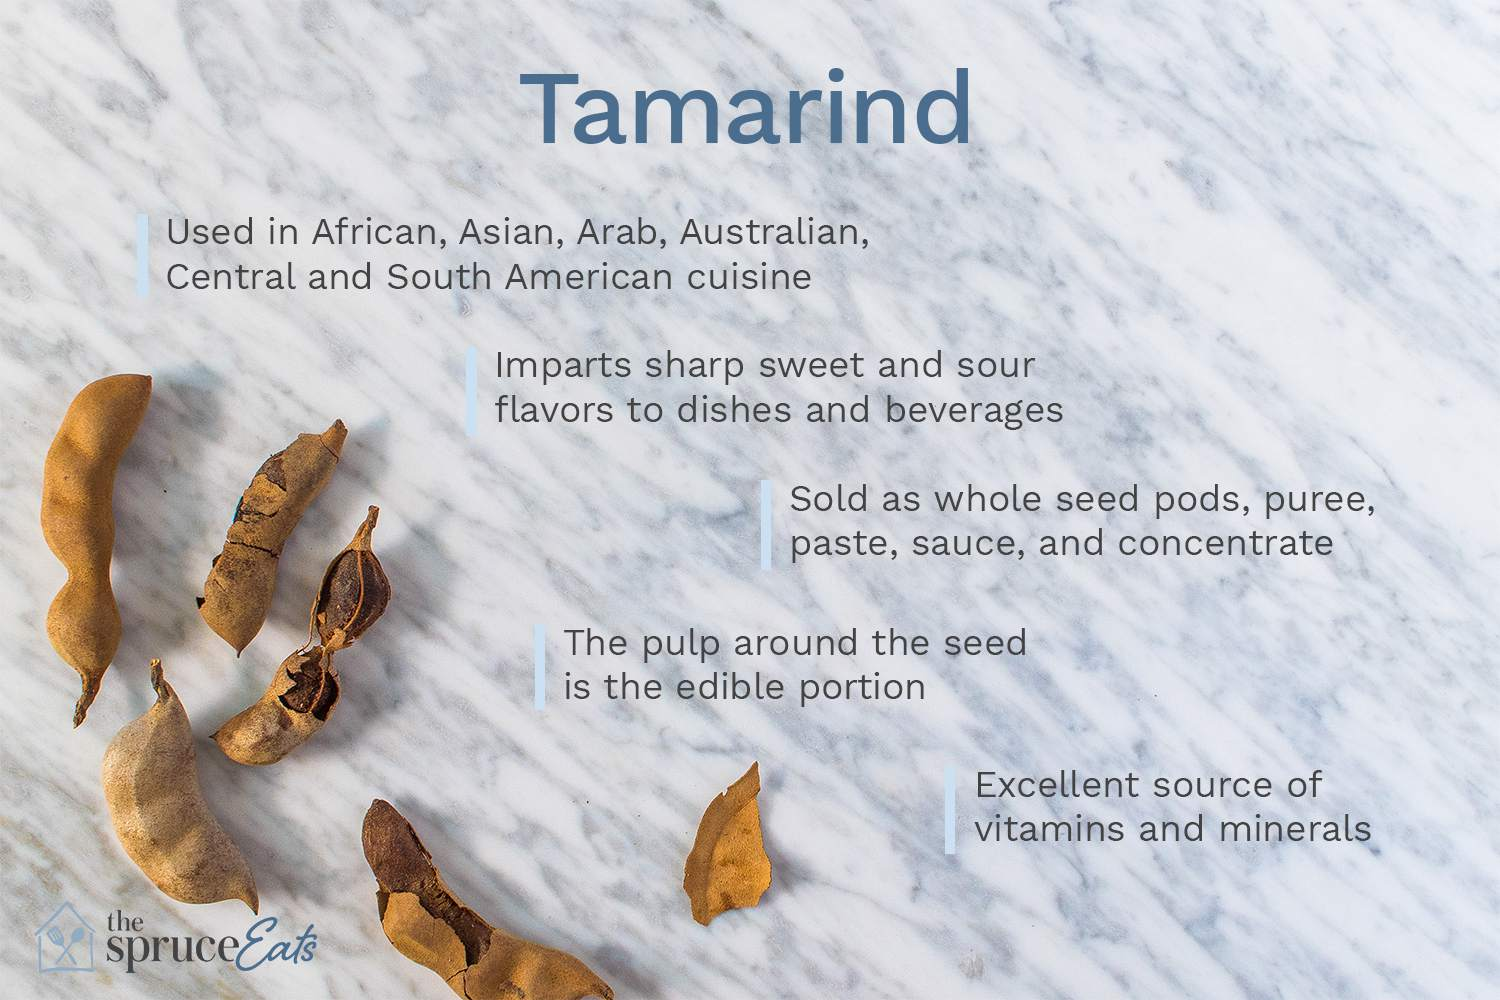 An overview of key points about tamarind